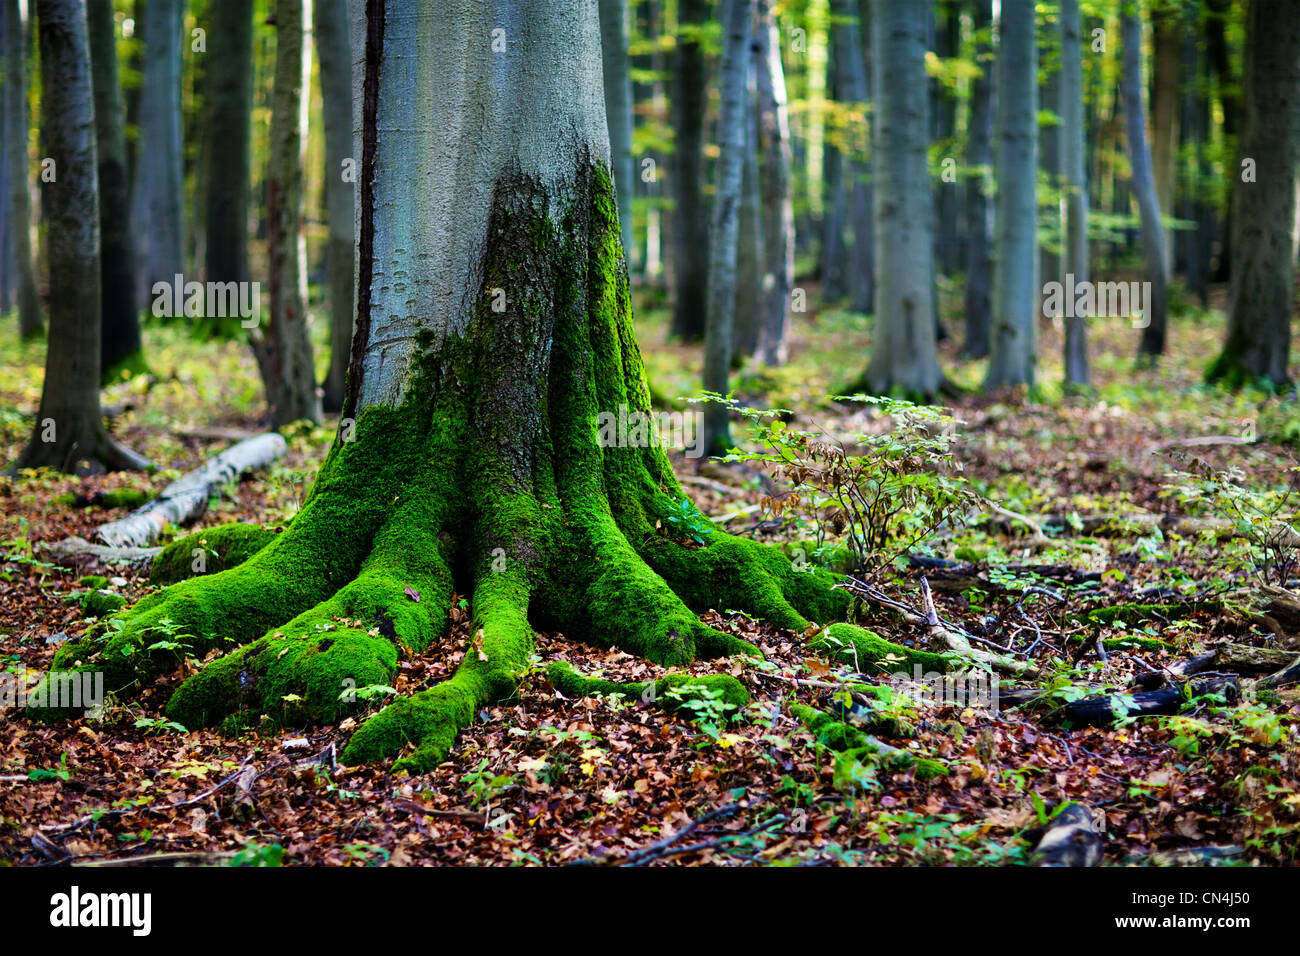 Moss on tree roots in forest - Stock Image